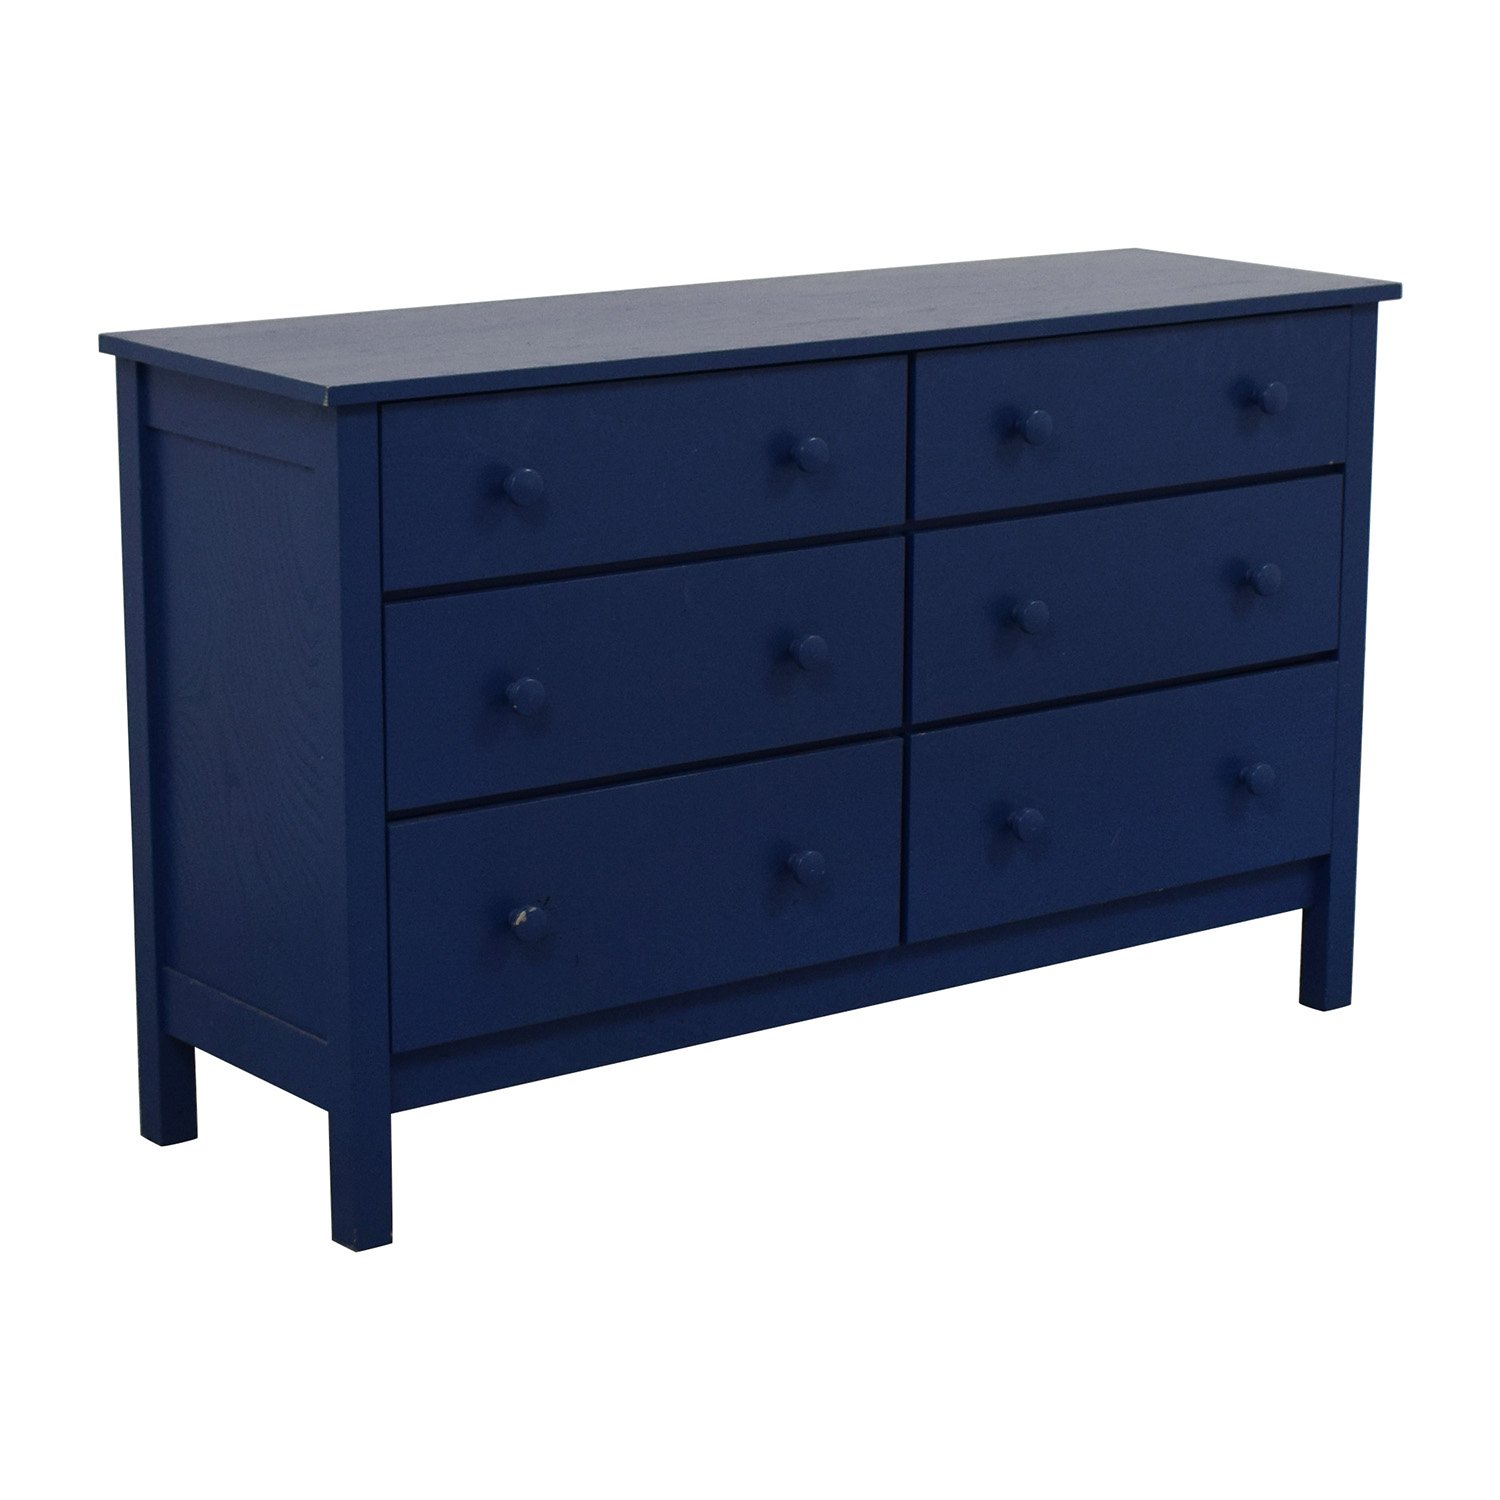 Spectra Wood Blue Six-Drawer Dresser blue